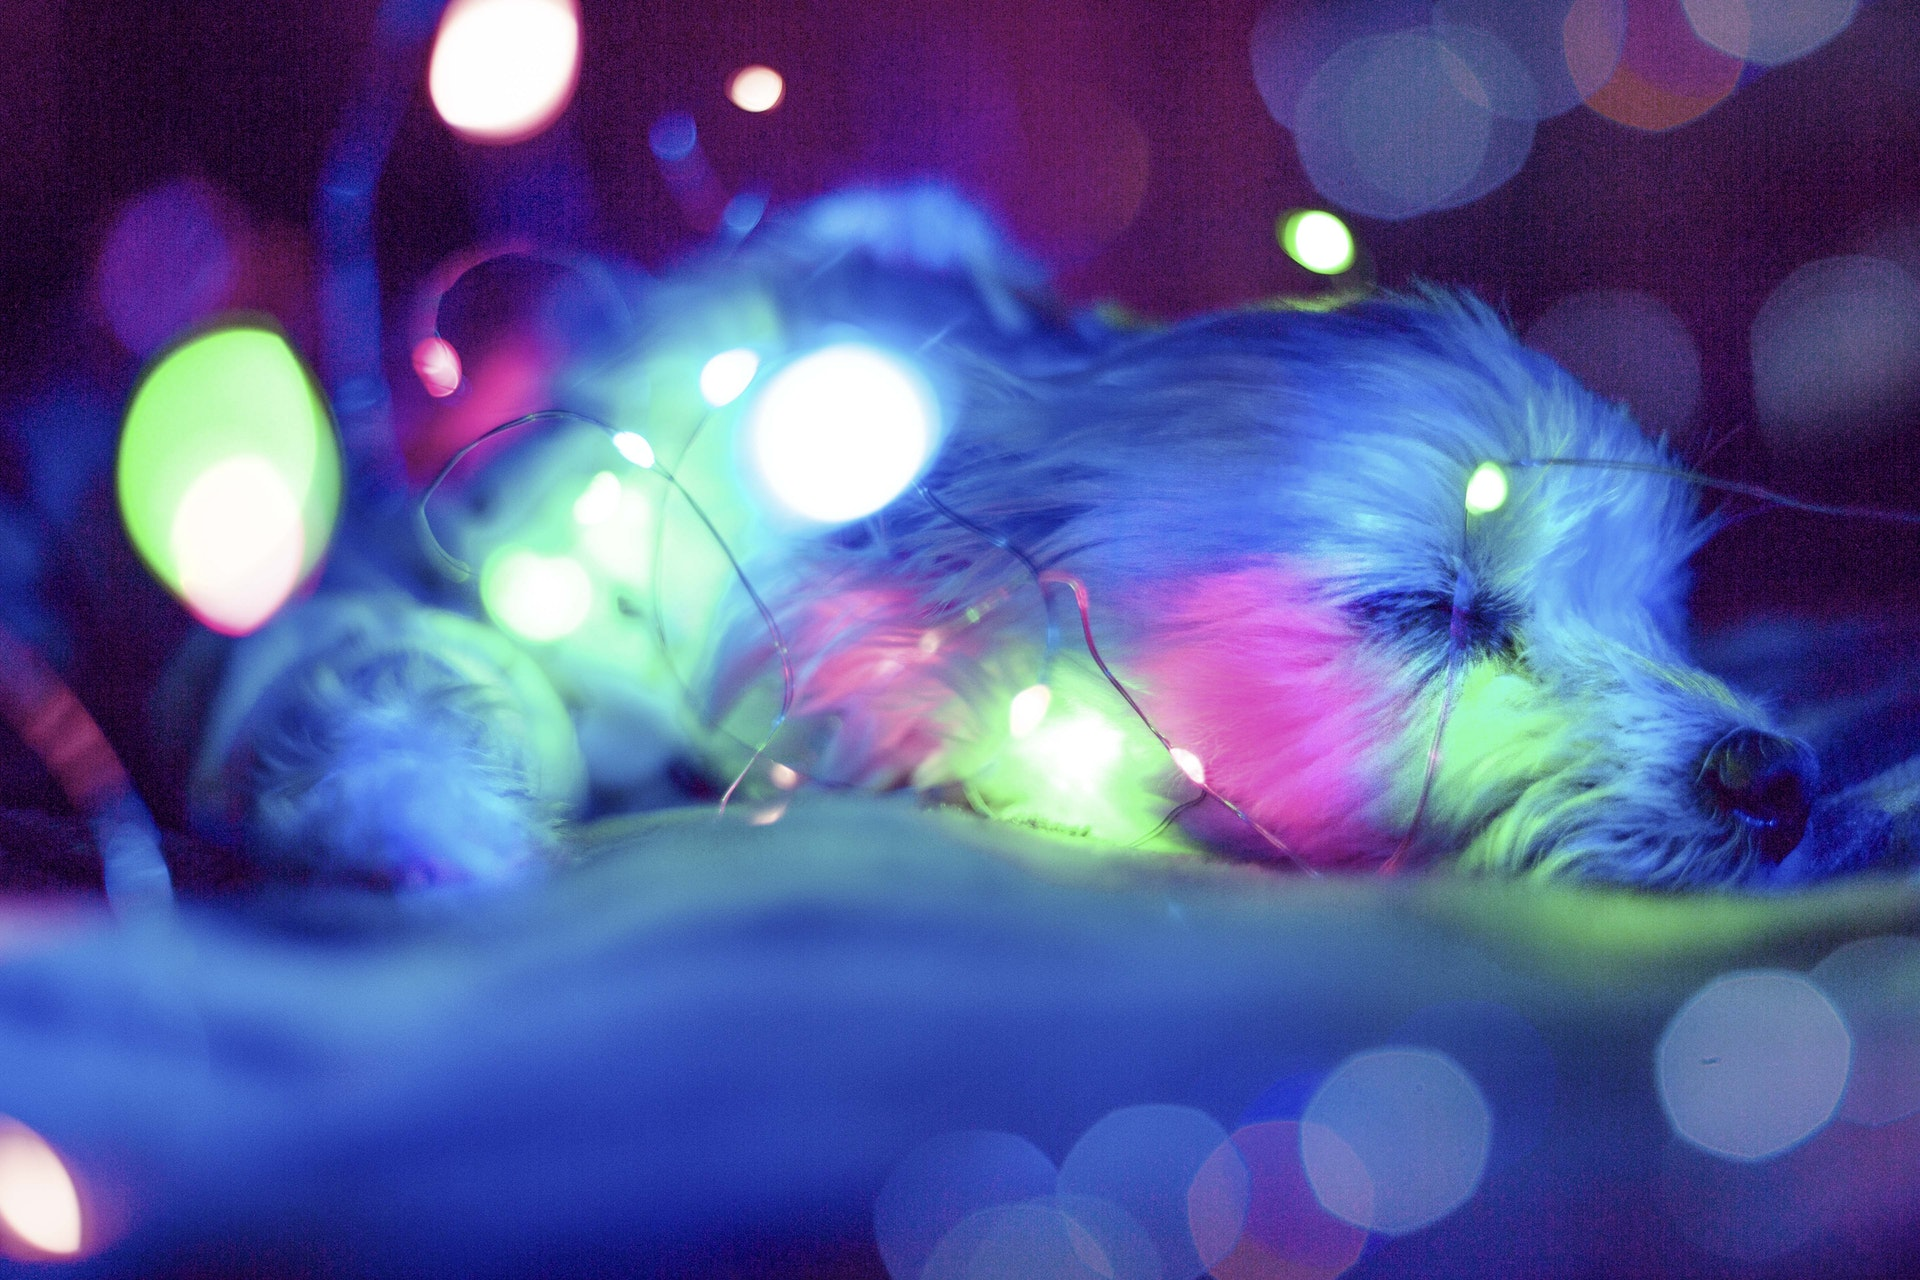 download wallpaper: slapende hond met neonlichtjes wallpaper